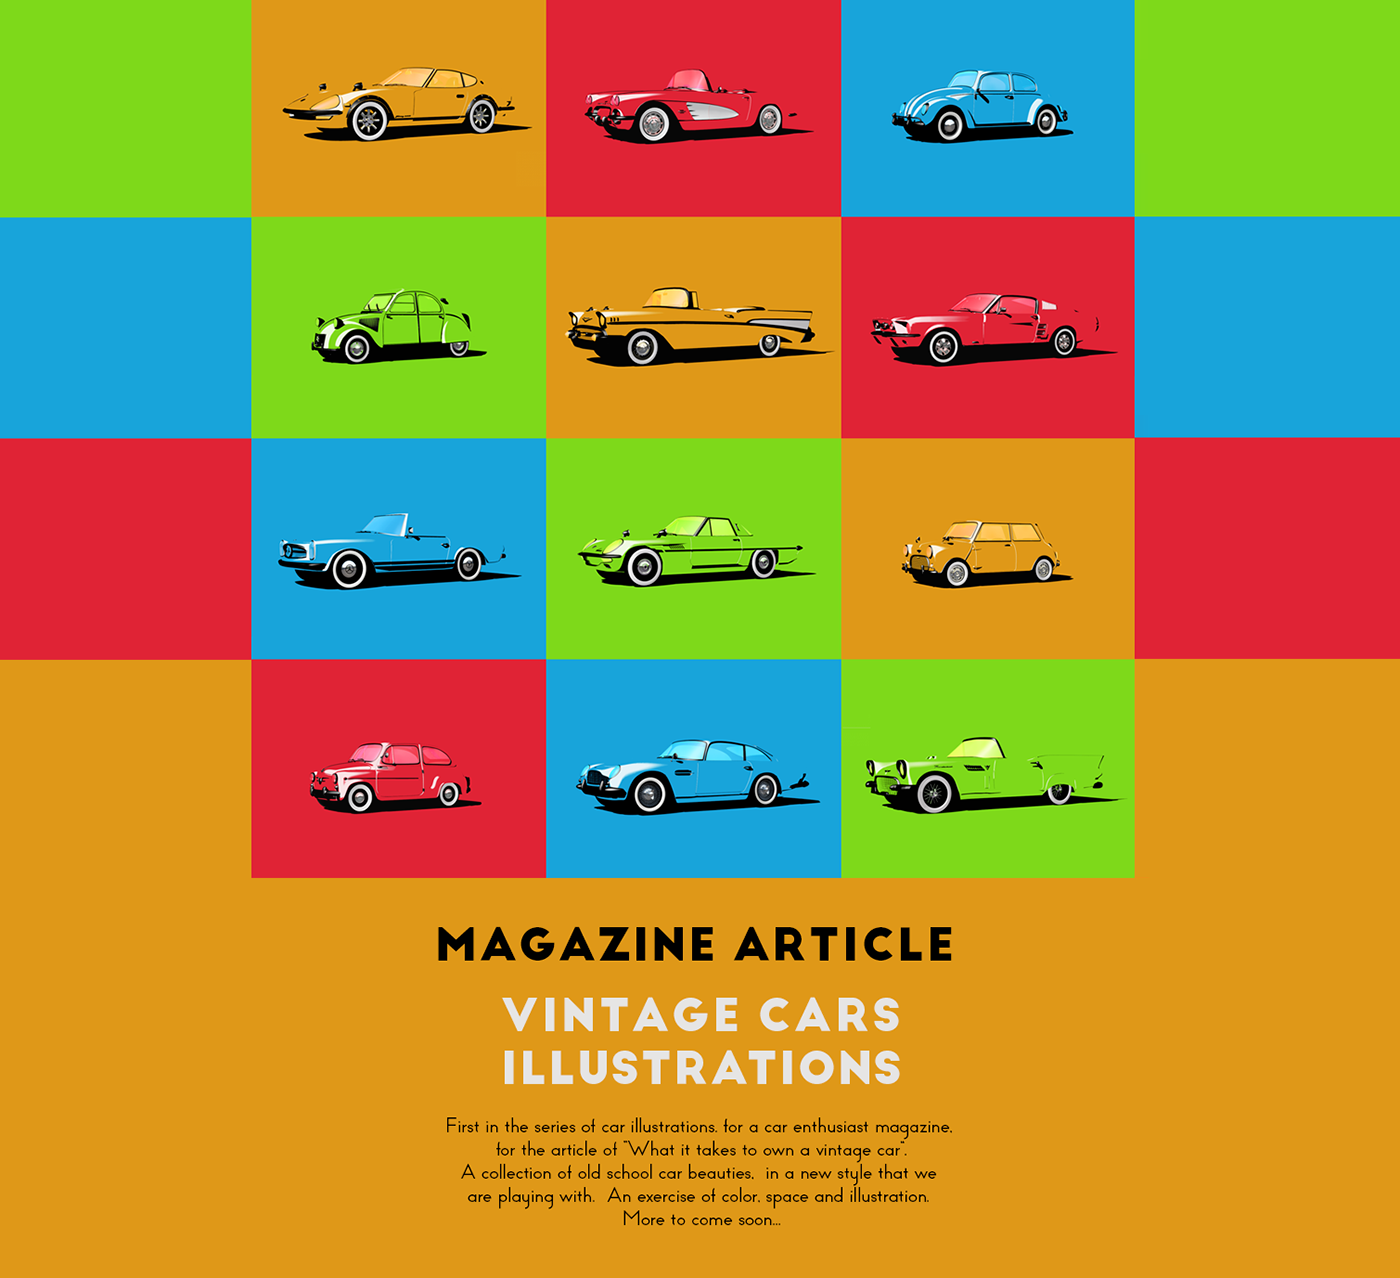 Vintage Cars - Magazine article illustrations on Behance